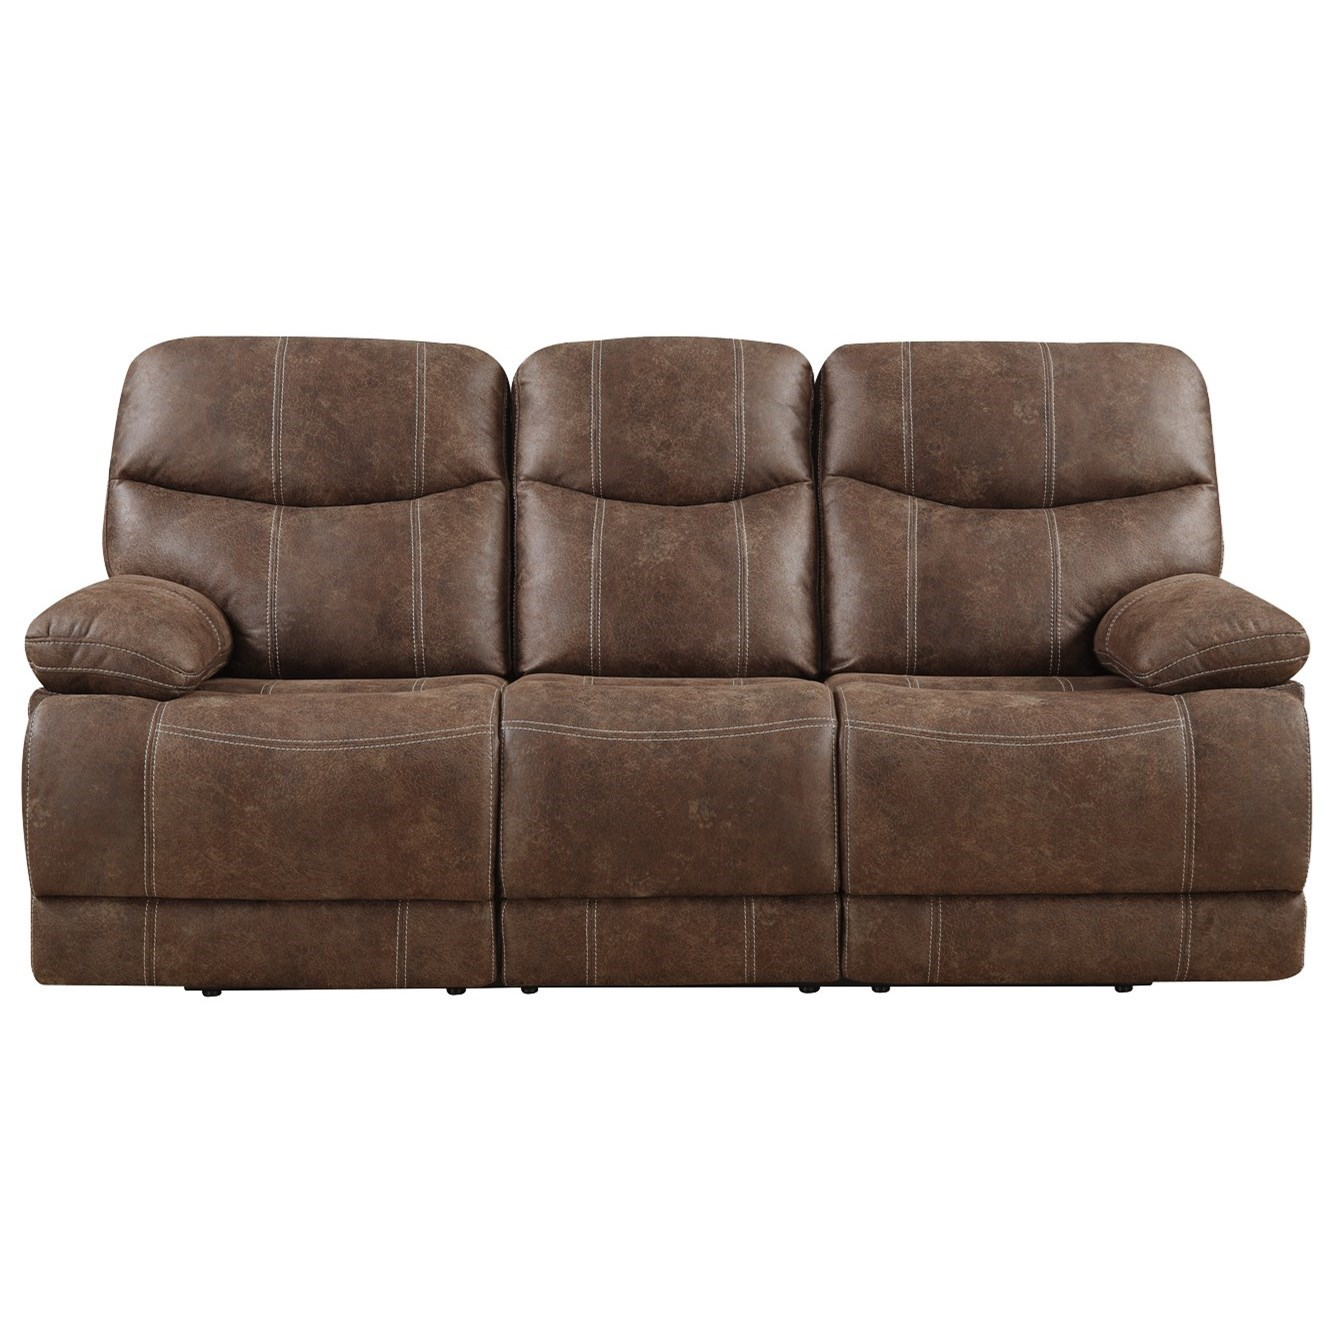 Earl Motion Sofa by Emerald at Northeast Factory Direct